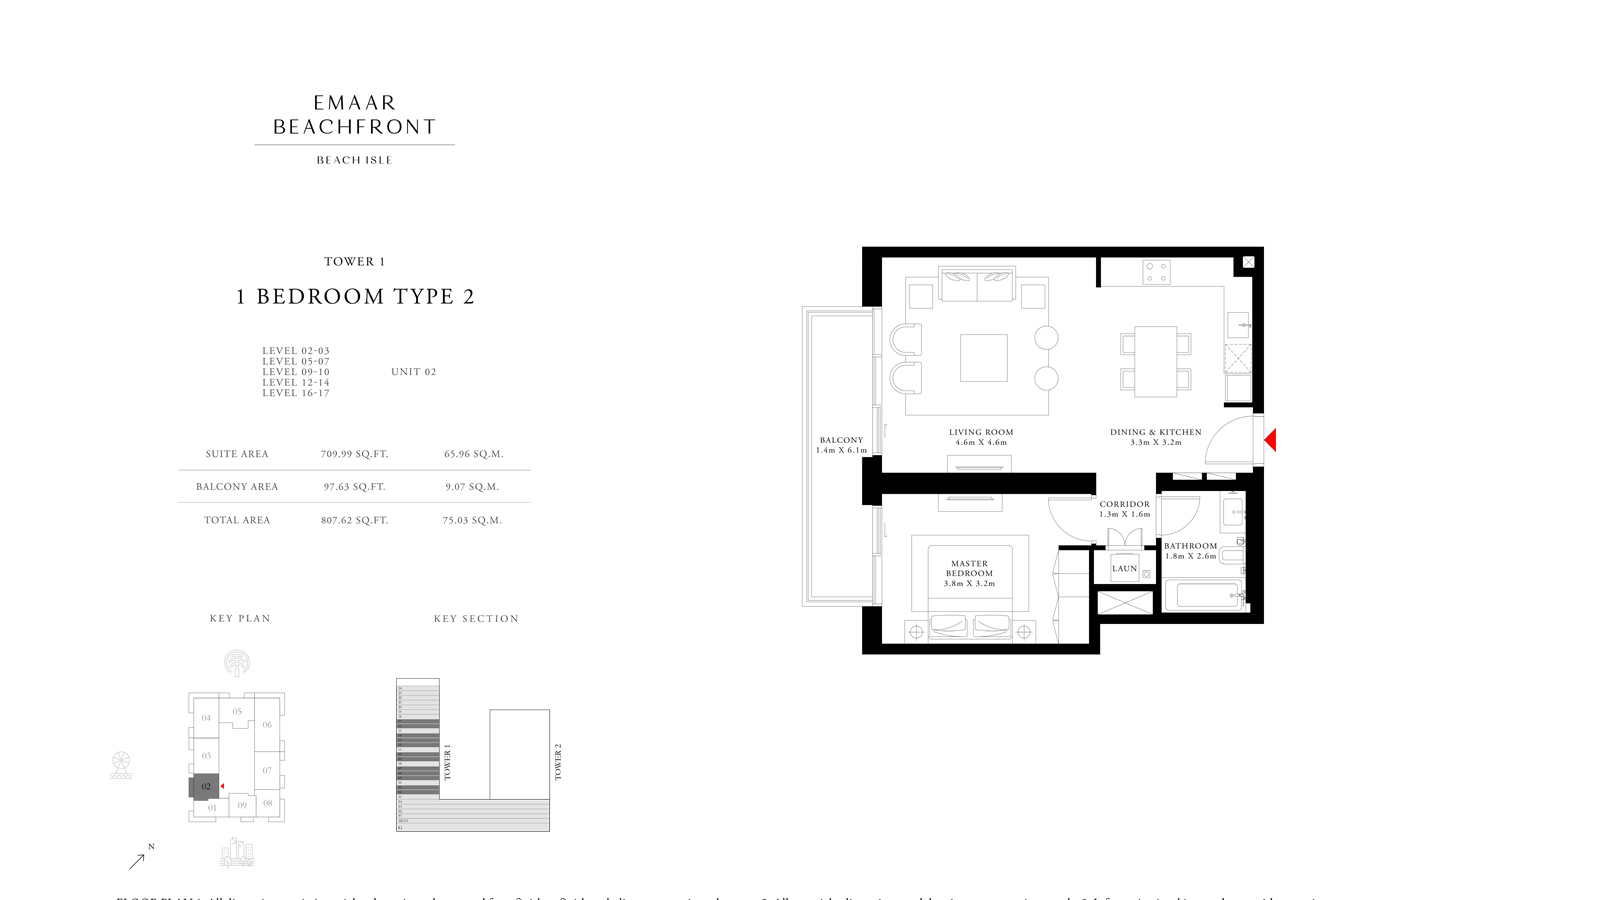 1 Bedroom Type 2 Tower 1, Size 807    sq. ft.